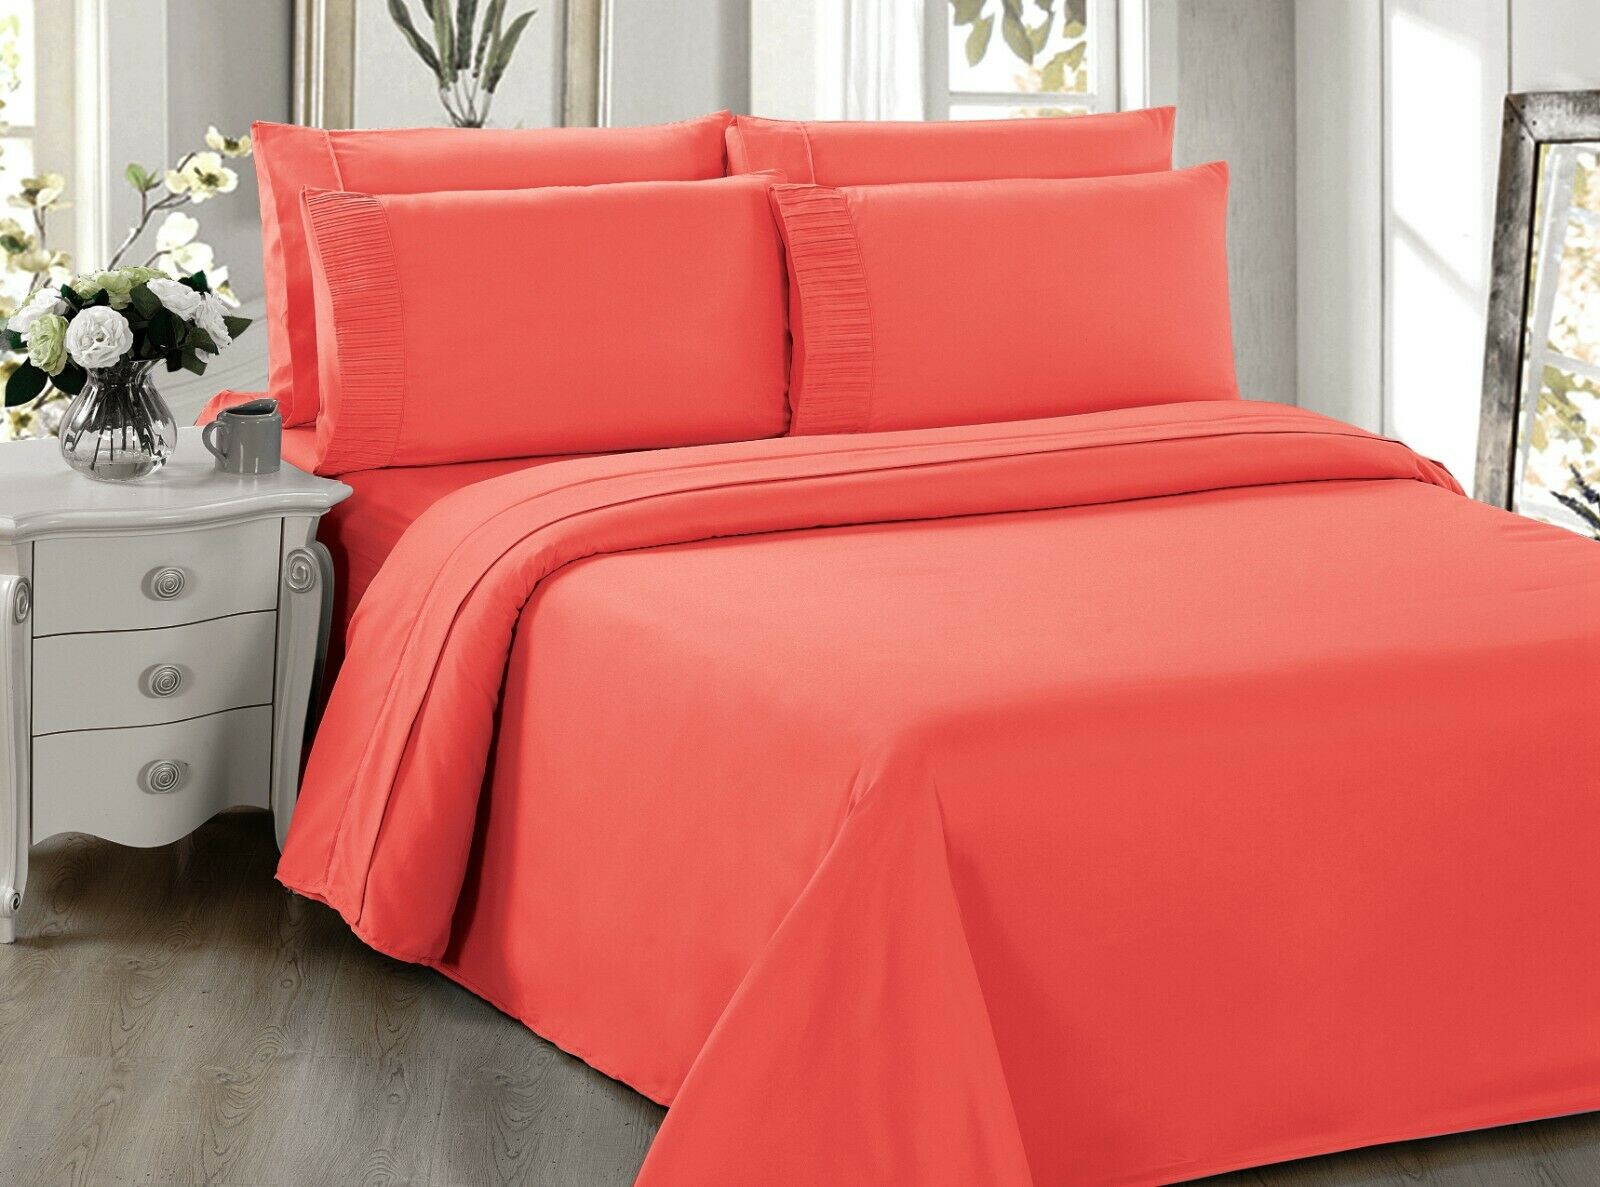 Black Color Bamboo Living Eco Friendly Egyptian Comfort Bedding 6 Piece Sheet Set with 4 Pillowcases Double//Full Size